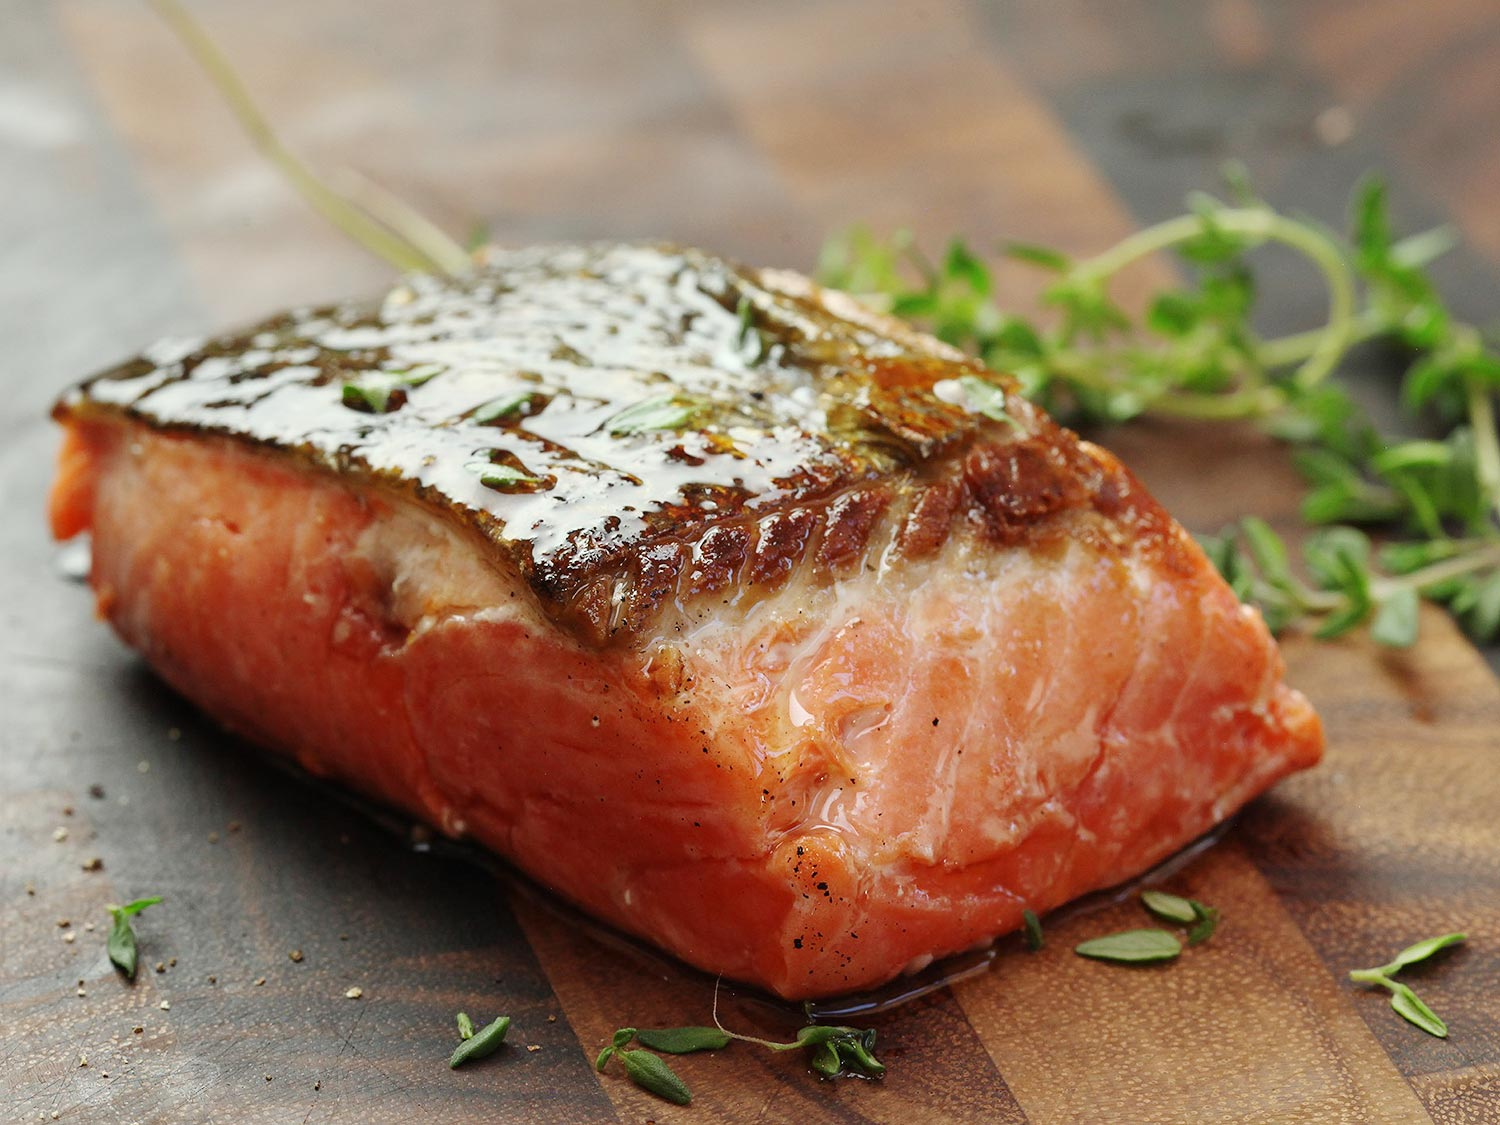 Cooked piece of salmon. The omega-3 fatty acids in salmon can help with the regeneration of myelin.